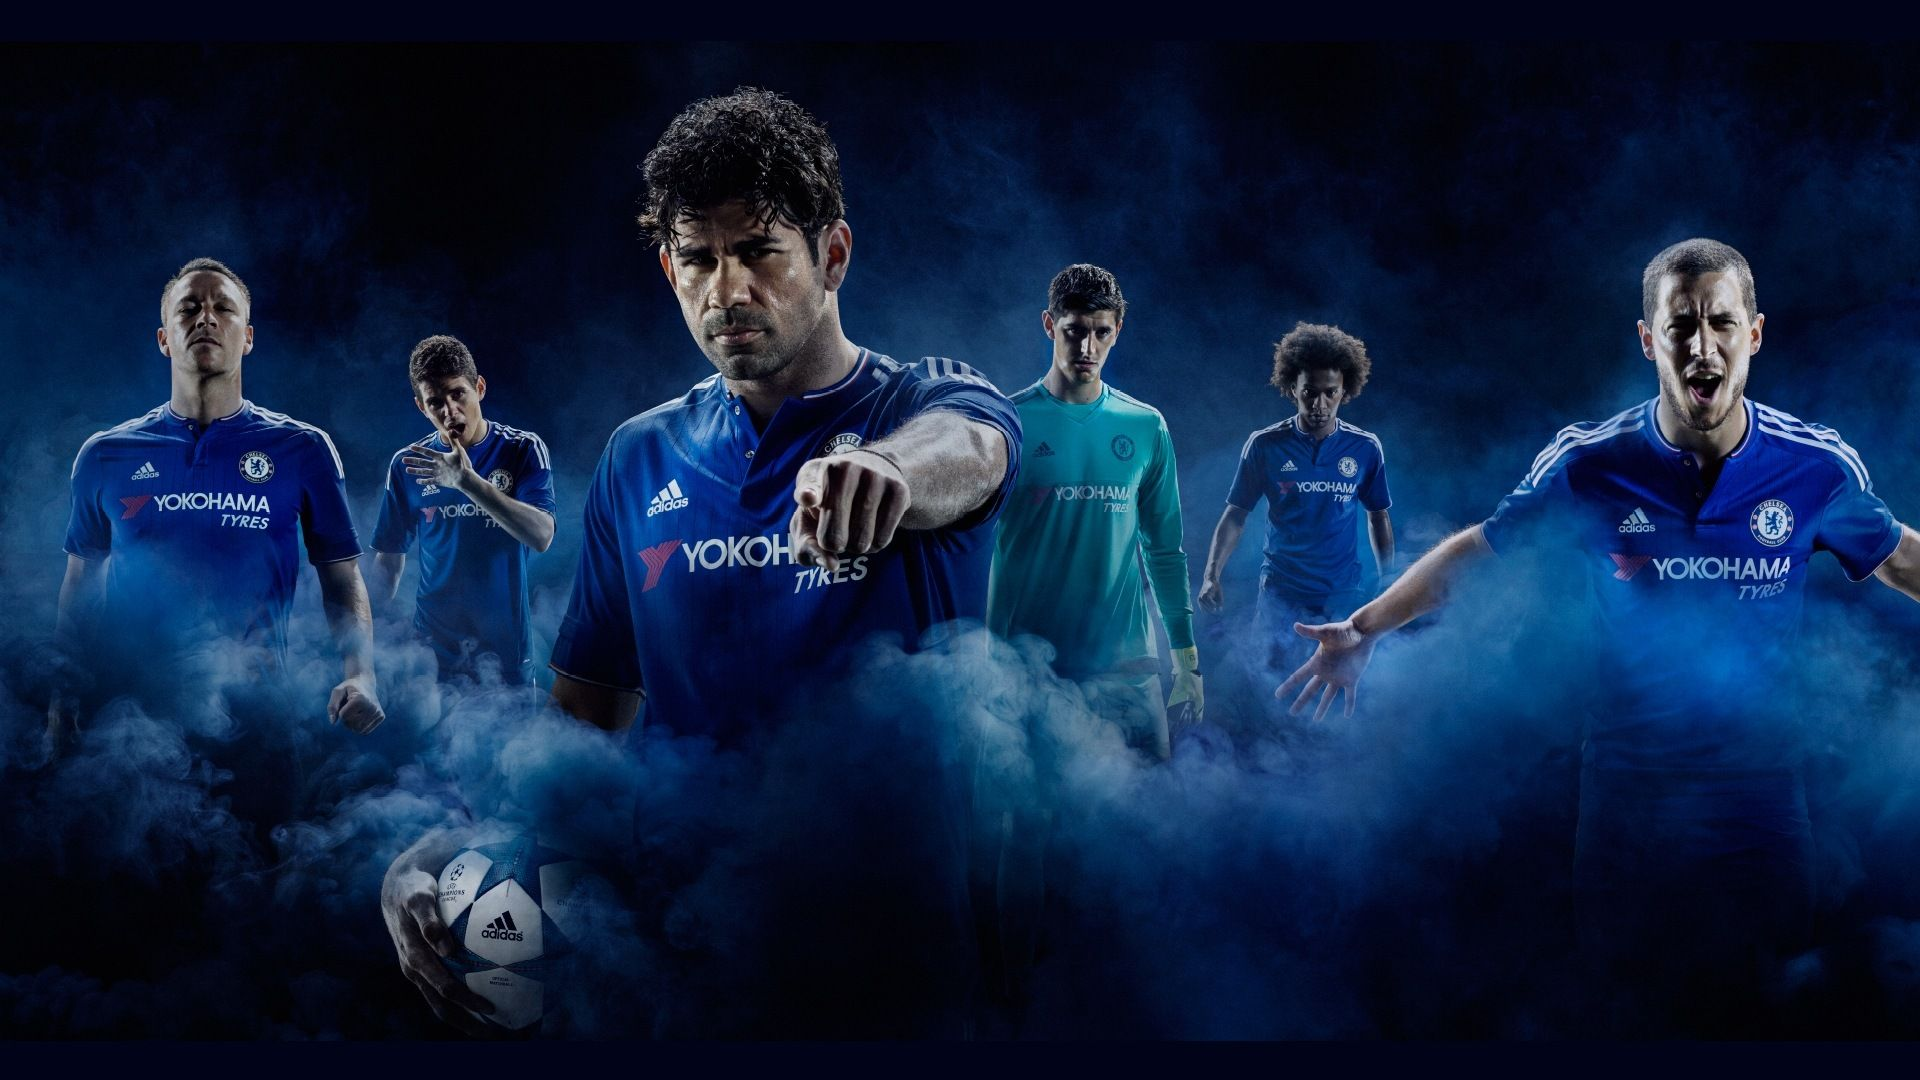 Chelsea FC HD Background Picture Image 1920x1080